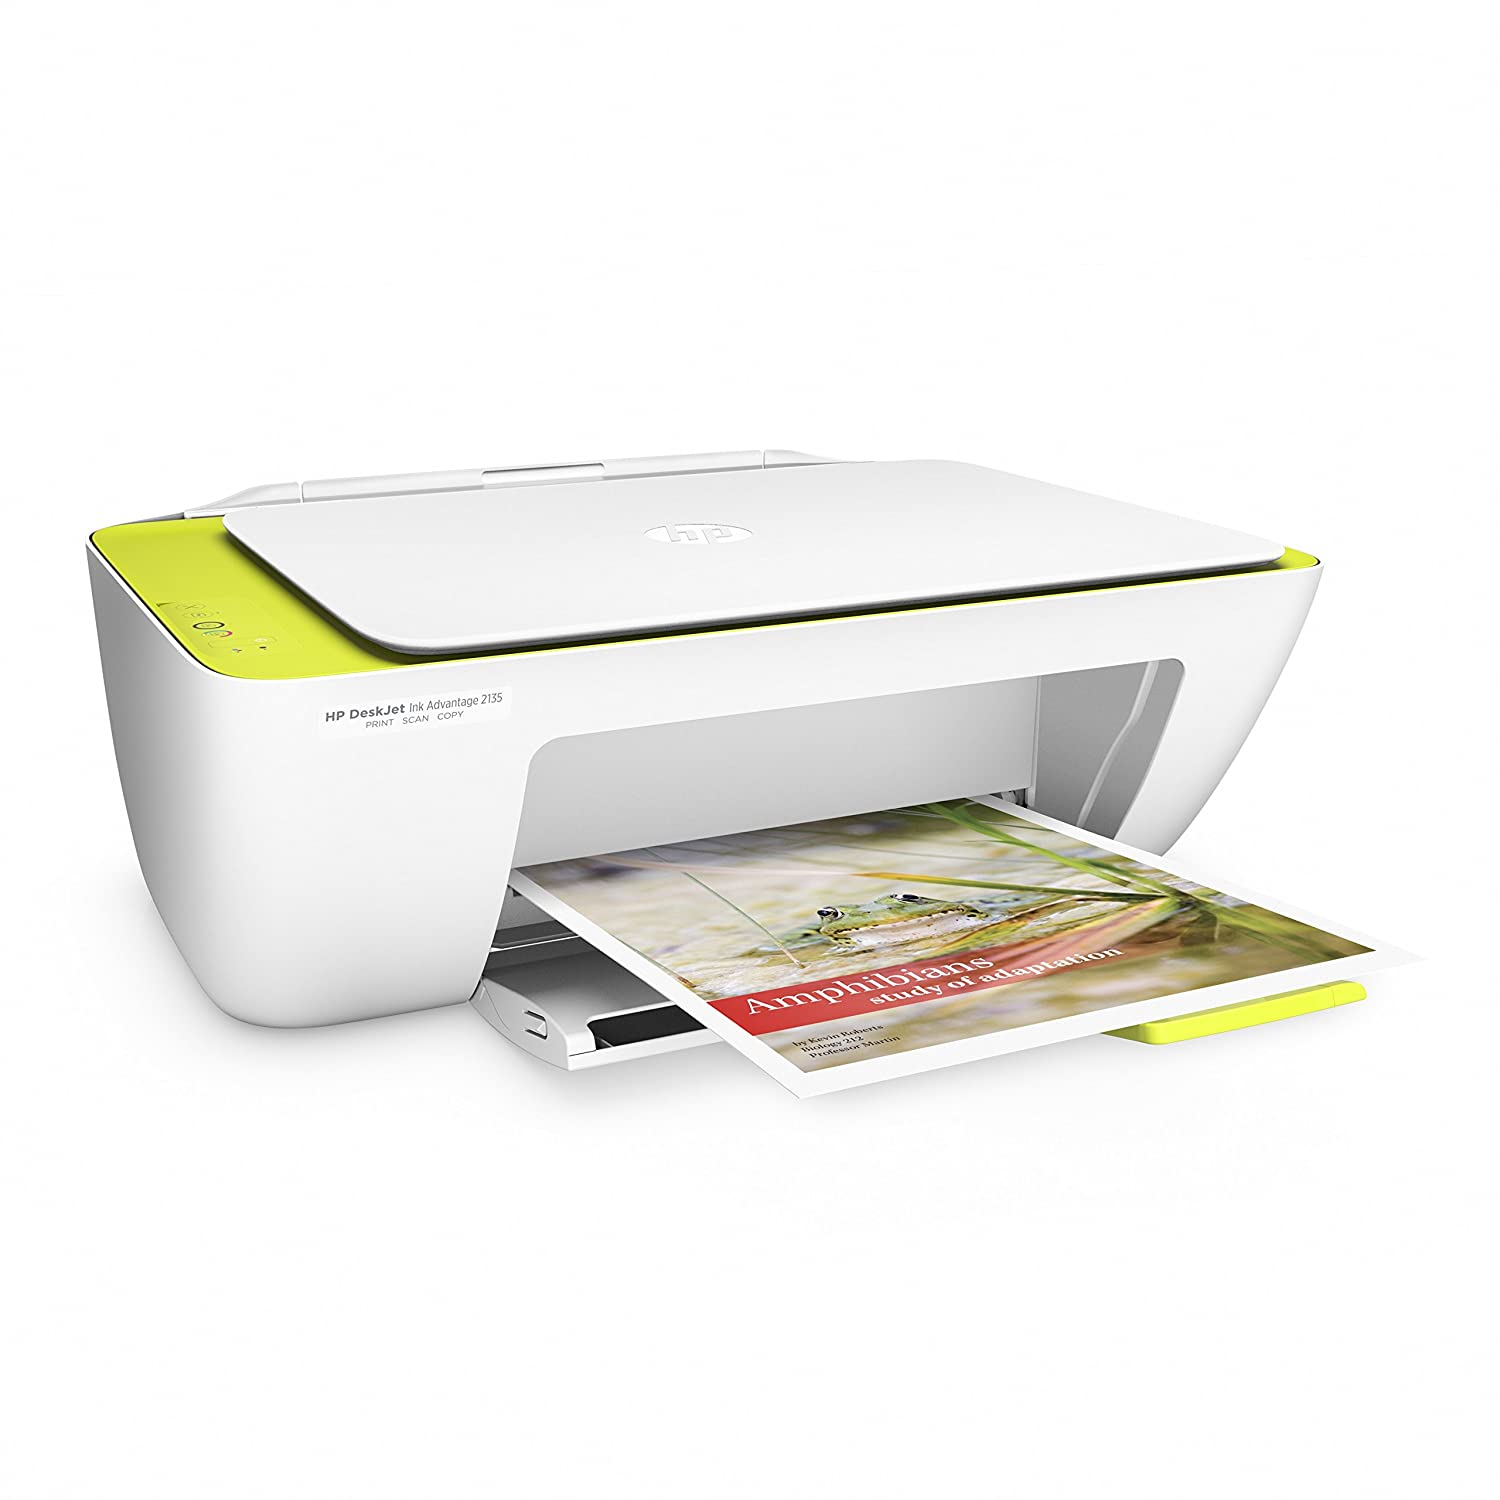 Printers With Scanner Buy All in One Printers online at best prices